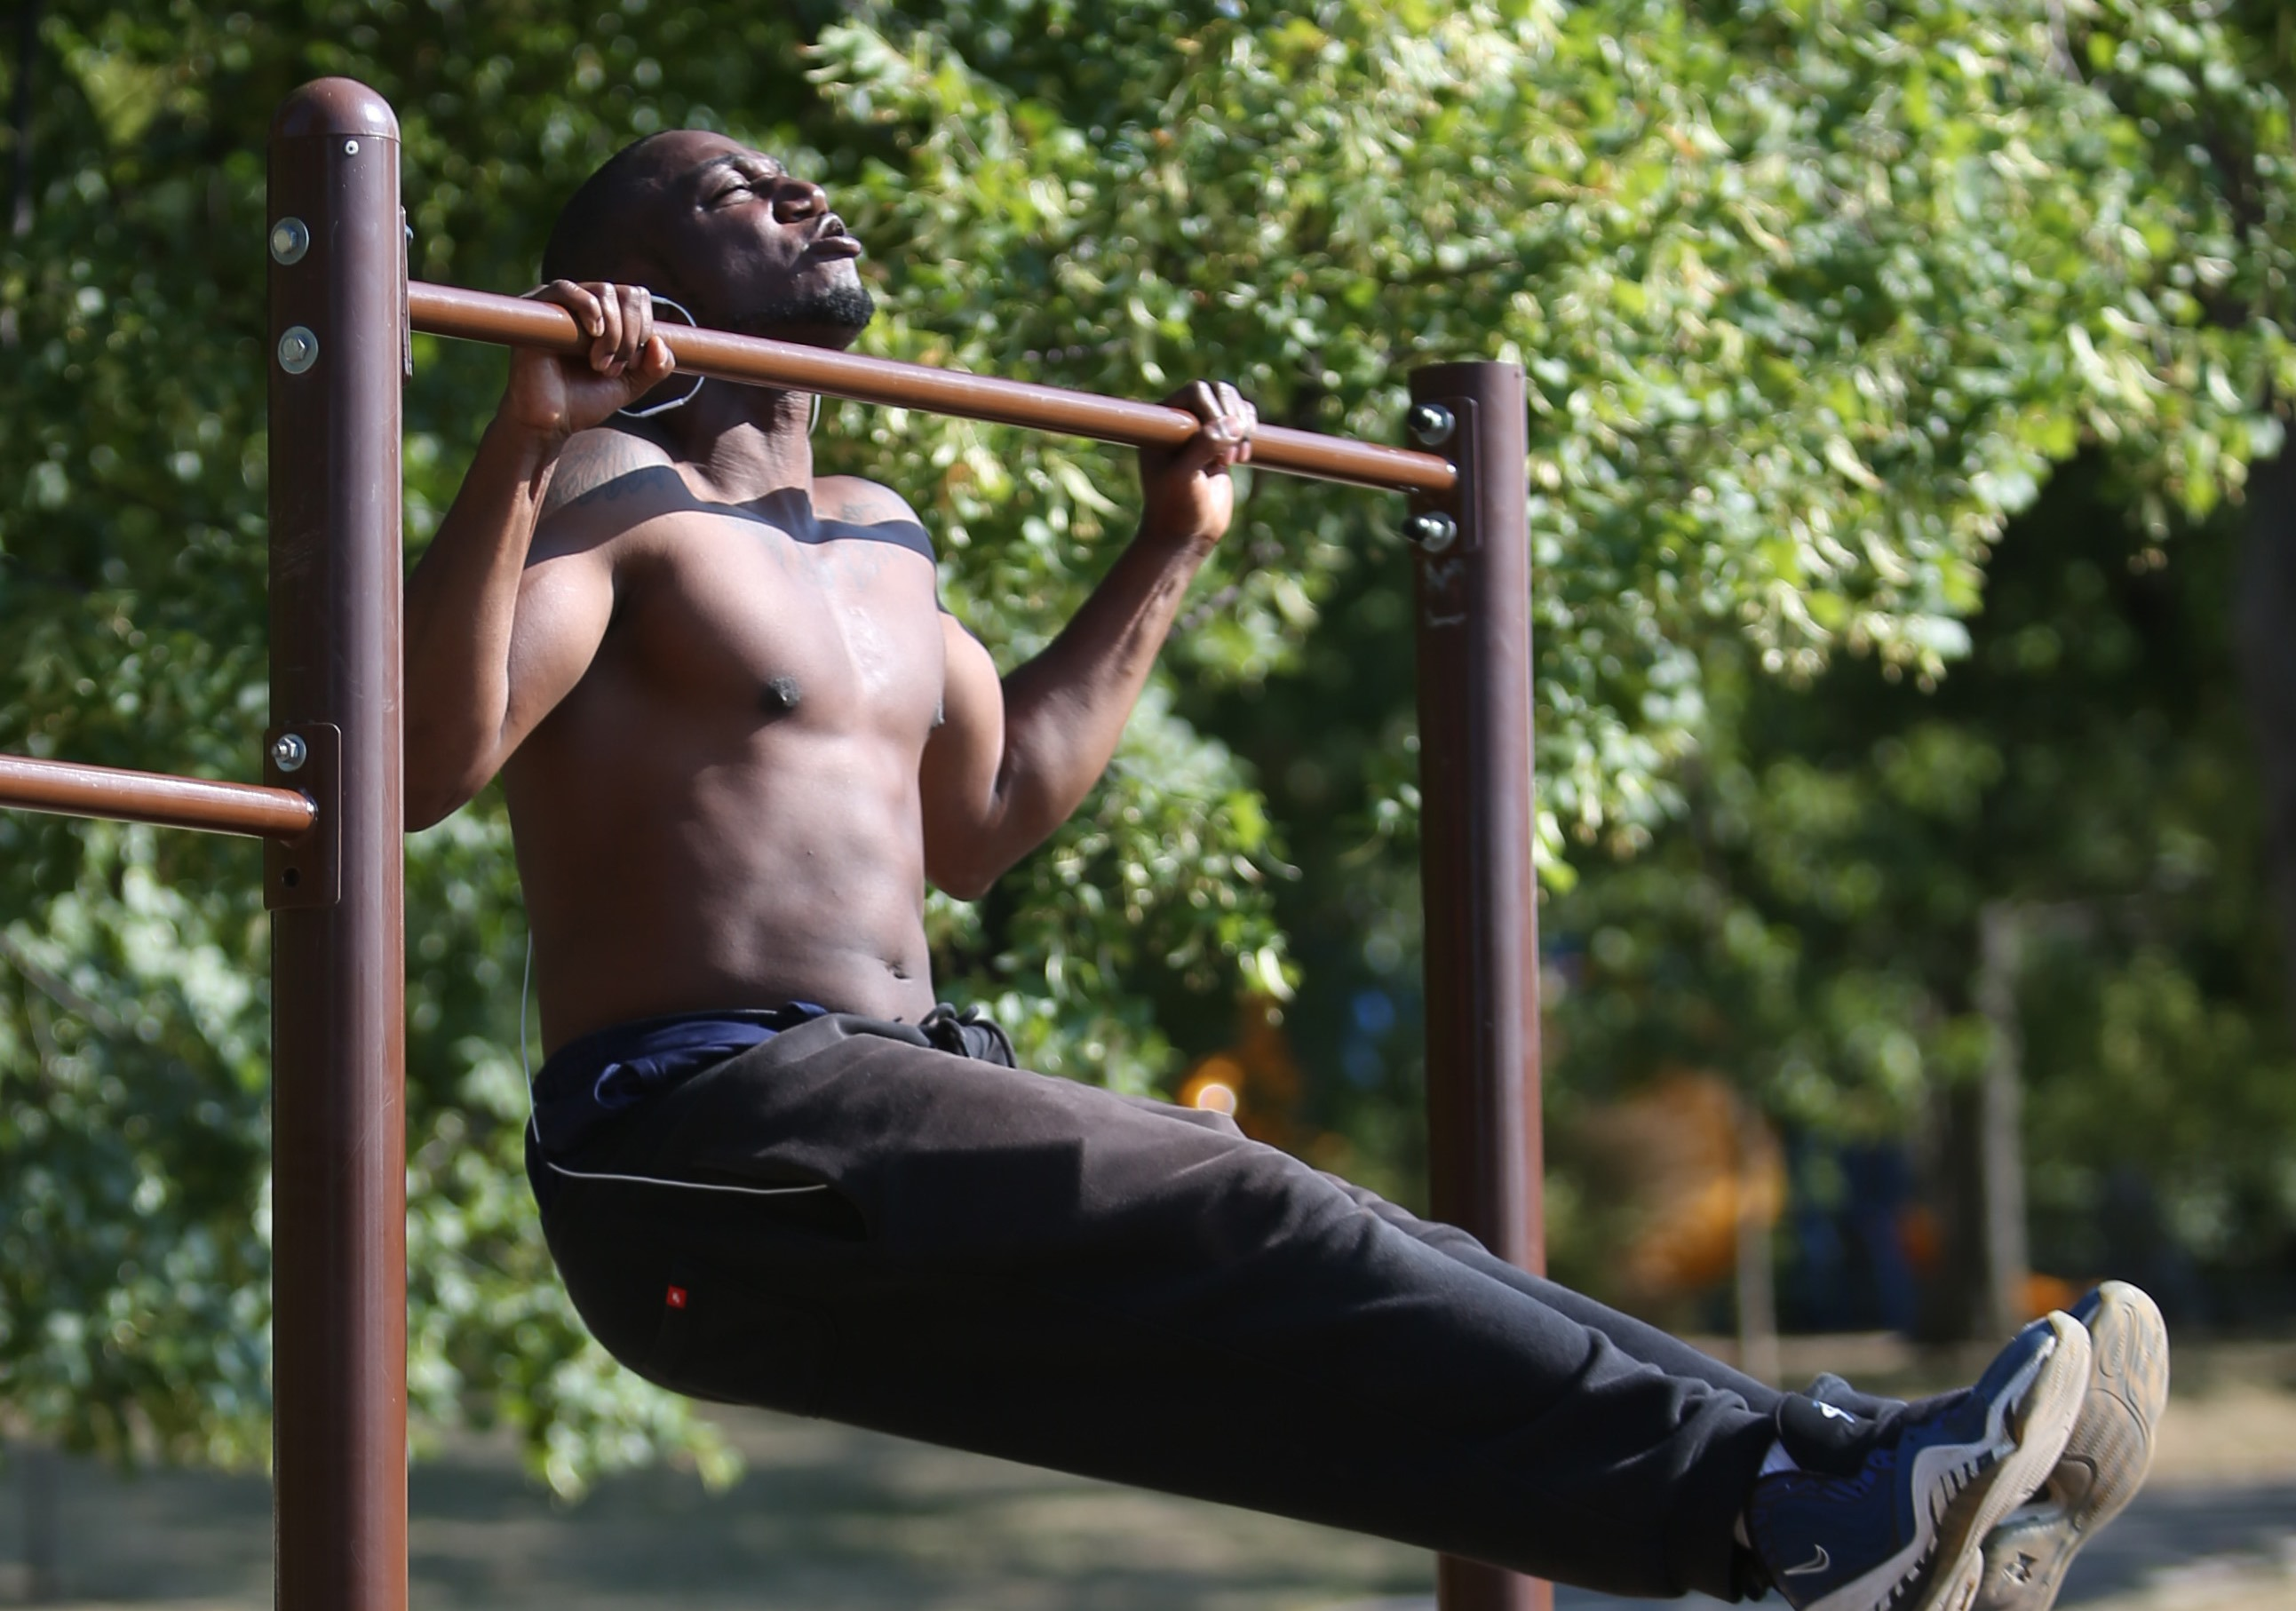 Bernard Bell does pull-ups at Parcourse Fit Center. Though he has a gym membership, Delaware Park is close to his house and very convenient. (Sharon Cantillon/Buffalo News)